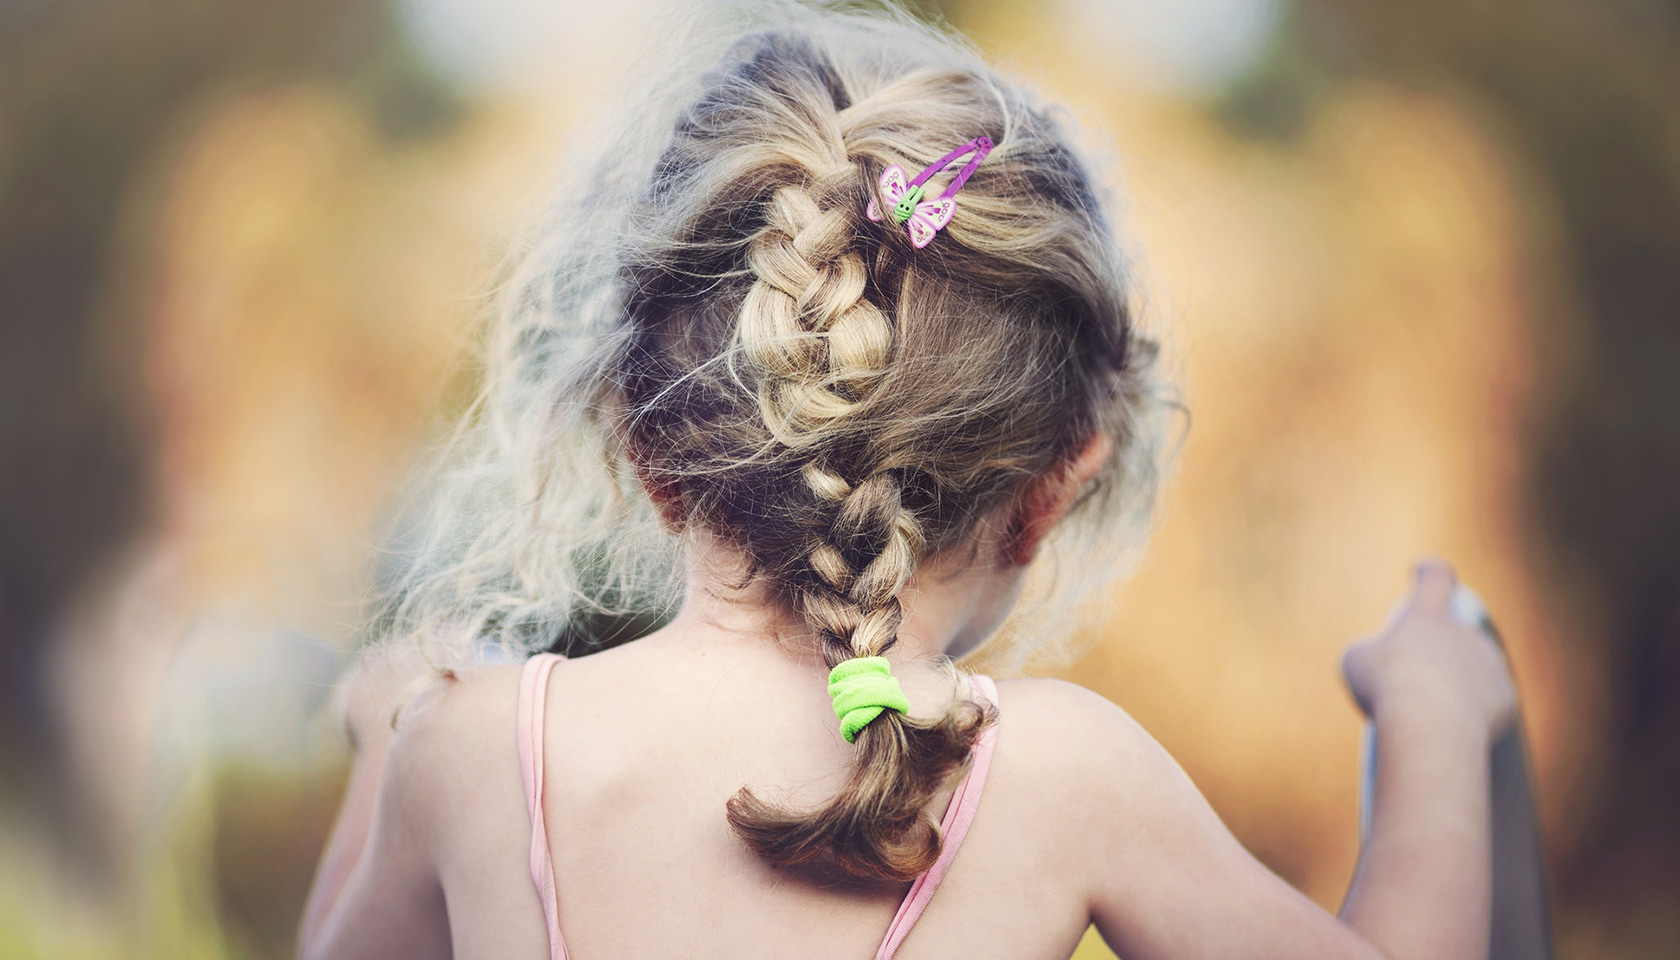 How do you know if your child has head lice?